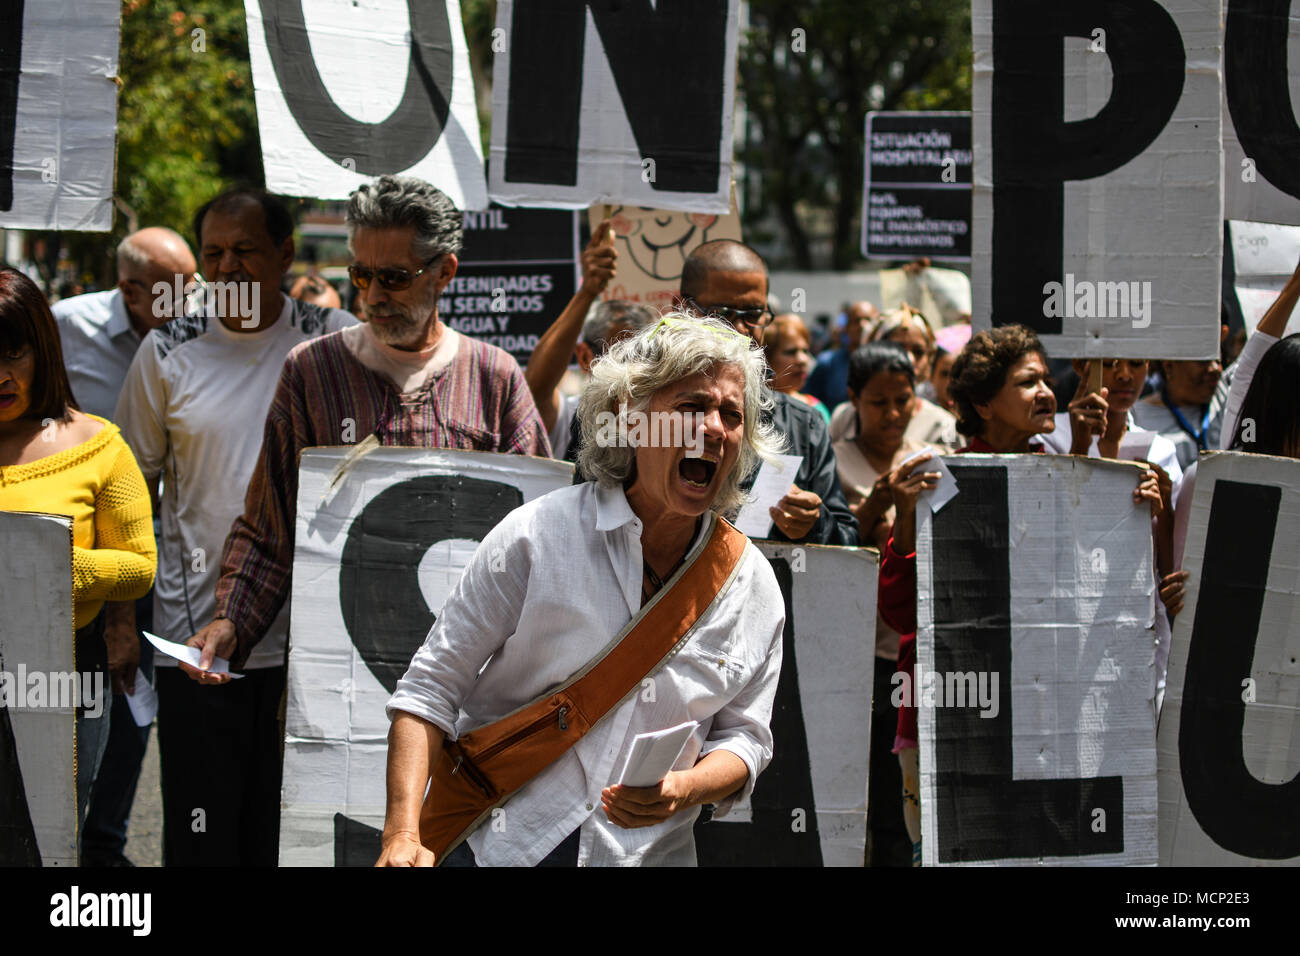 Caracas, Venezuela. 17th Apr, 2018. A protester seen shouting slogans during the demonstration.National protest in the health sector for lack of medicines and demanding an increase in salaries. The protest was called by the health association (FETRASALUD in spanish) at the national level. Doctors and staff working in hospitals protested in front of each health center demanding an immediate solution to the crisis affecting the public health system in Venezuela Credit: Roman Camacho/SOPA Images/ZUMA Wire/Alamy Live News - Stock Image